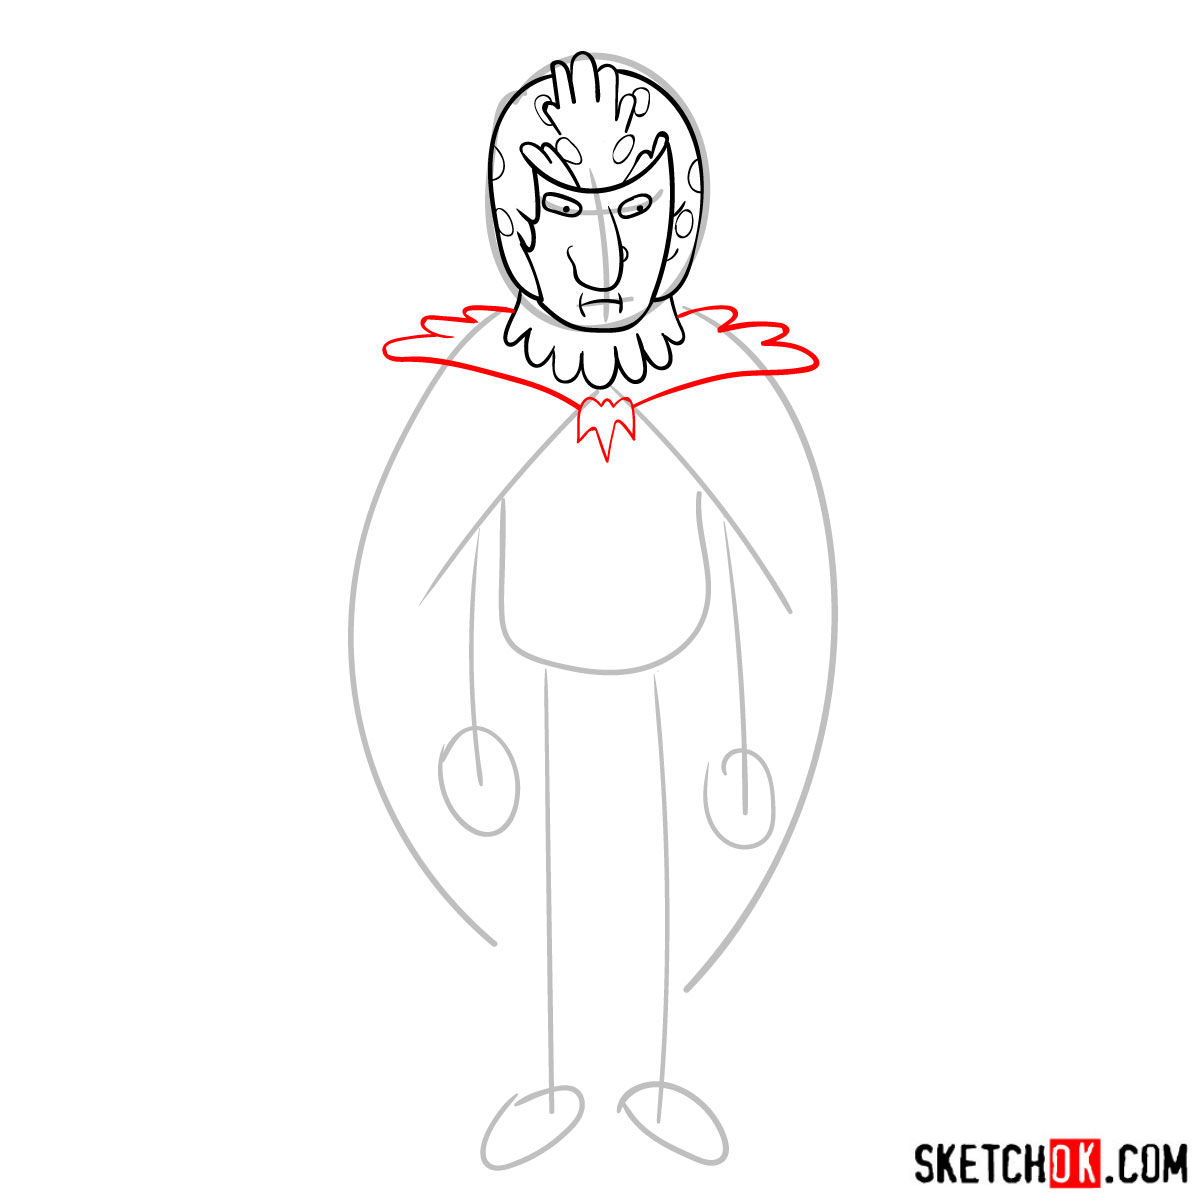 How to draw Birdperson from Rick and Morty series - step 06